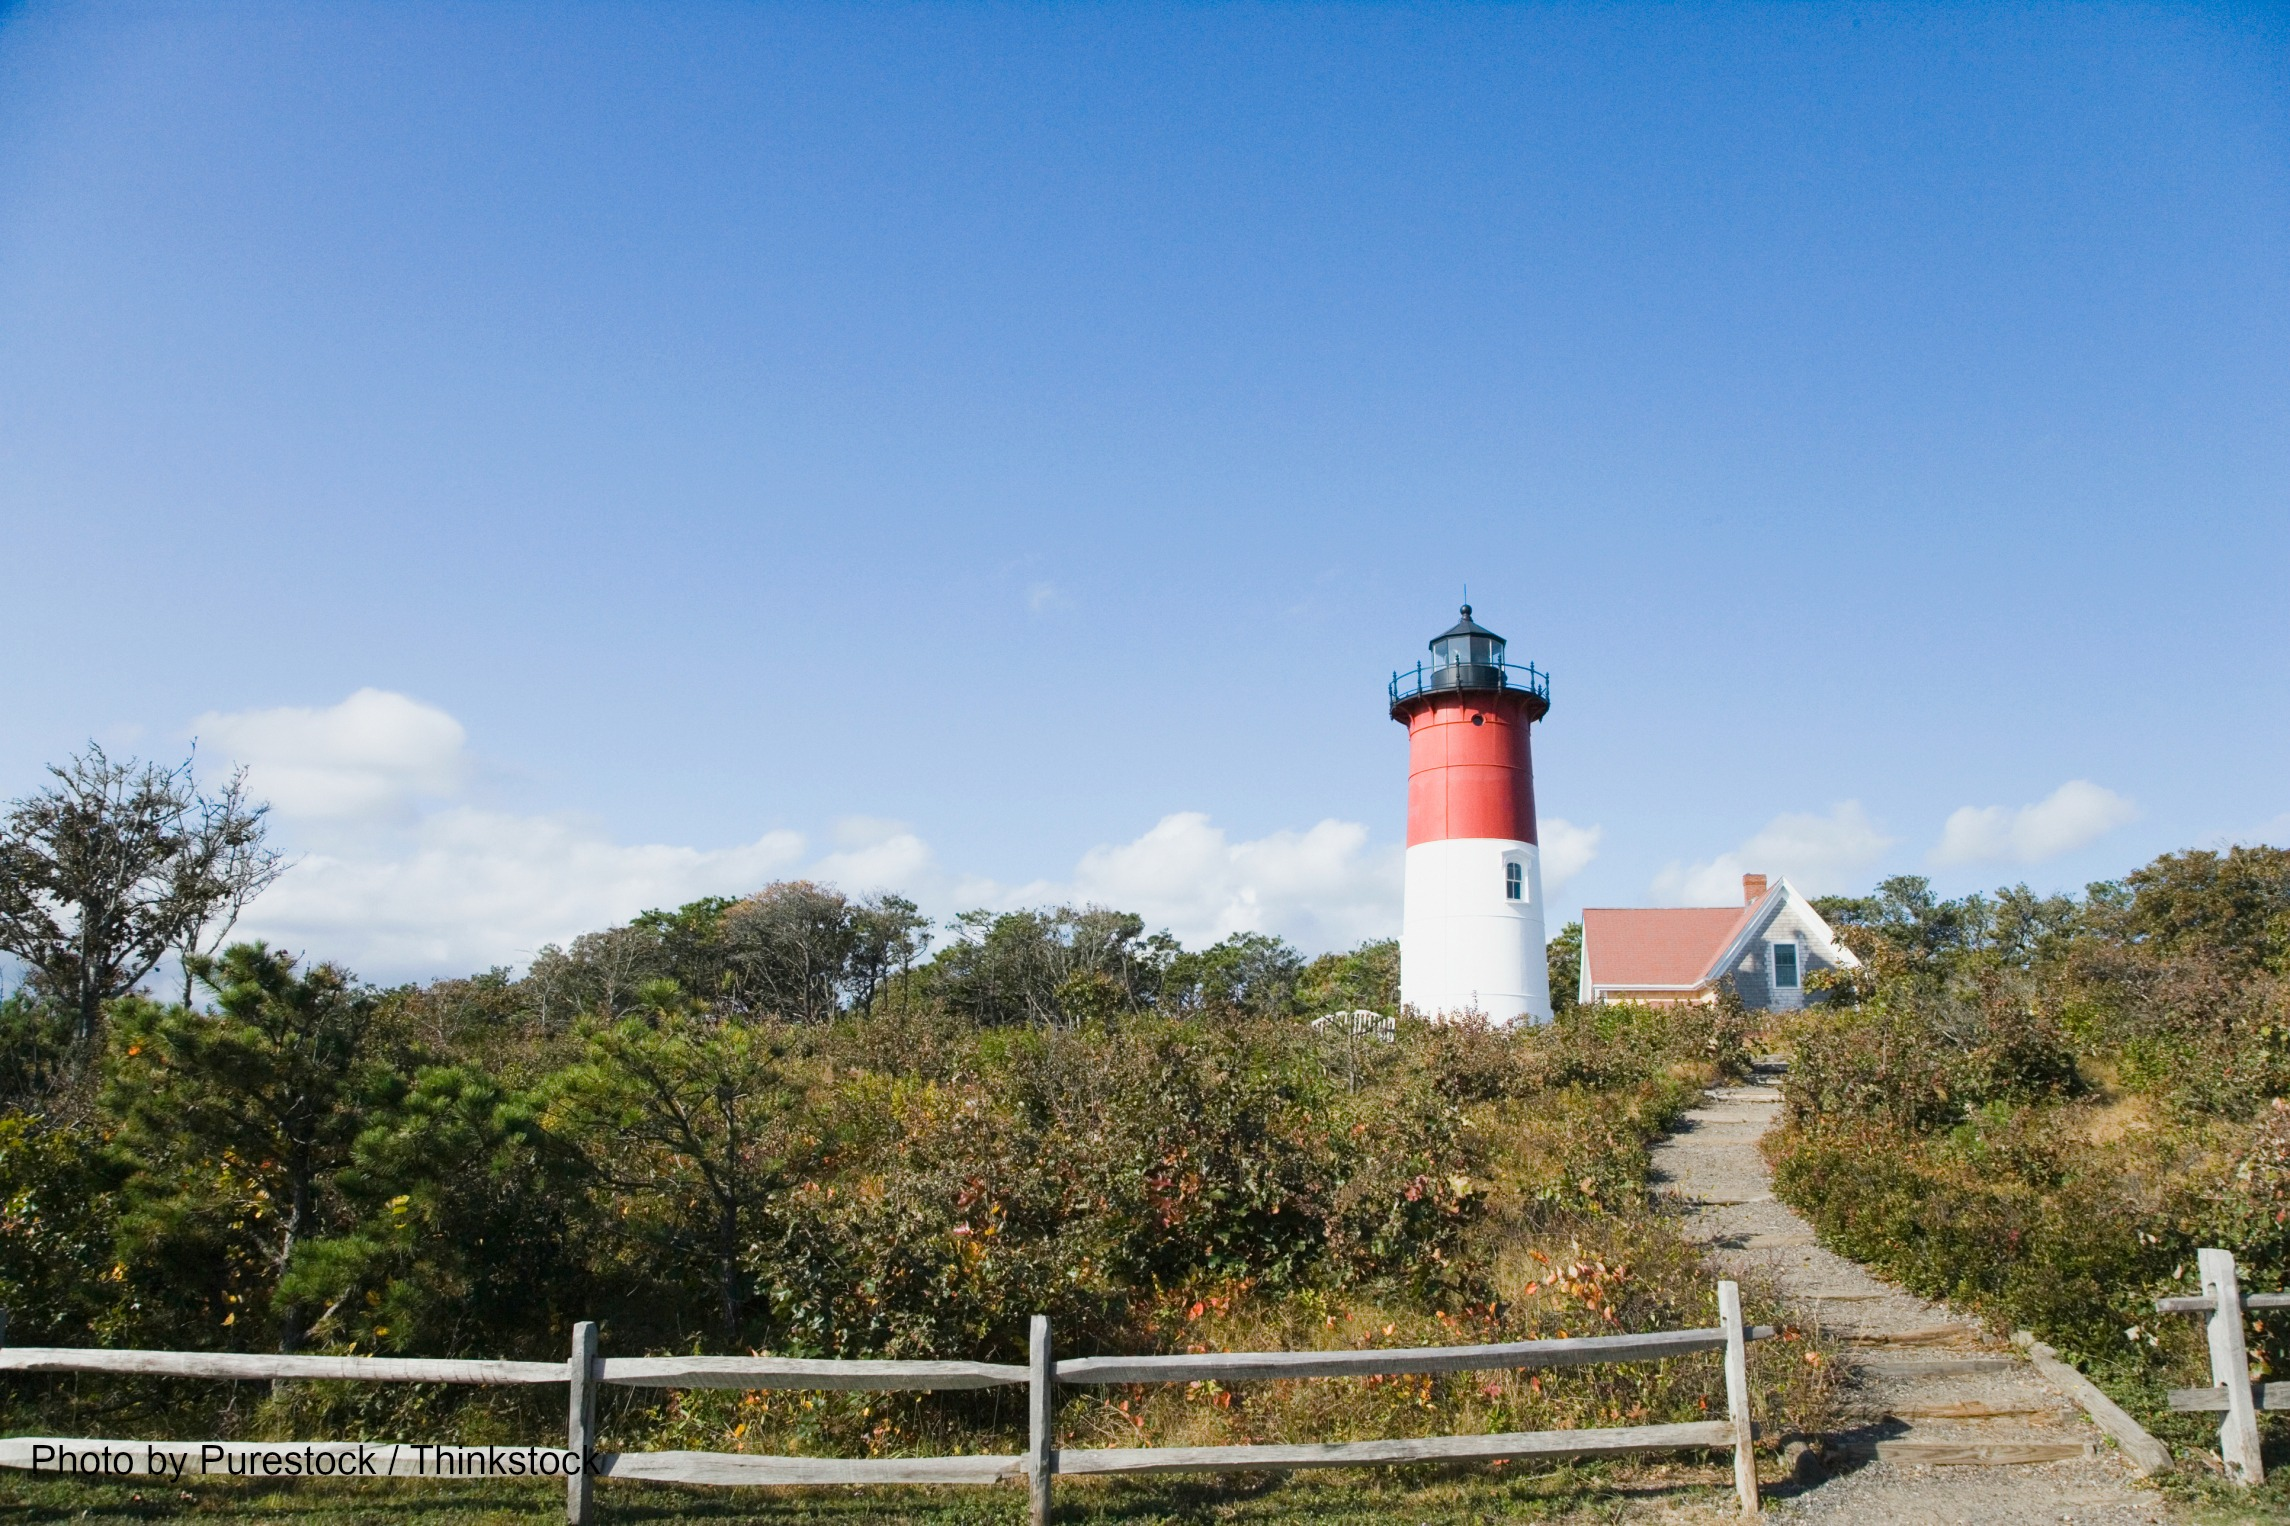 5 Of The Best Cape Cod Attractions That Everyone Will Love